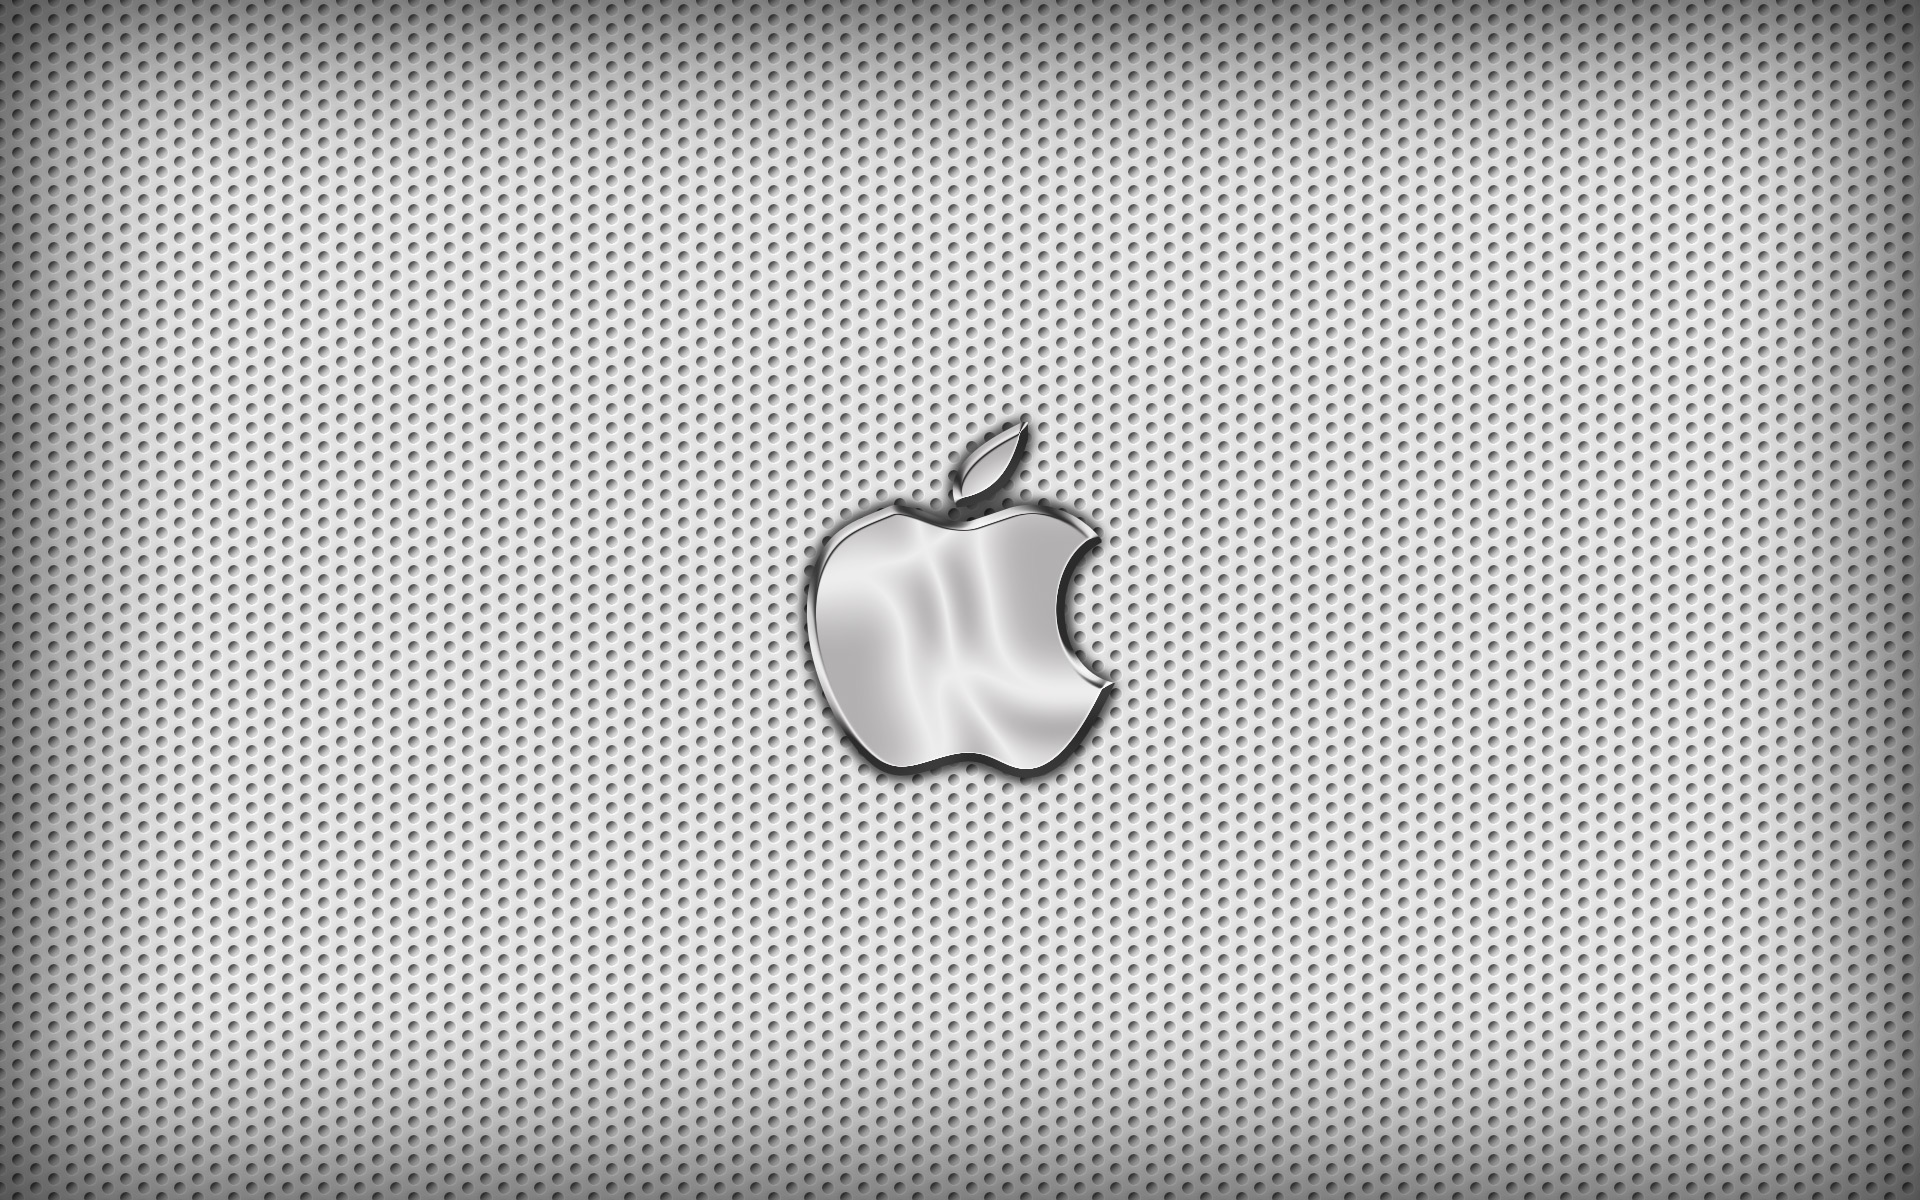 50 MAC WallpapersBackgrounds In HD For Download 1920x1200